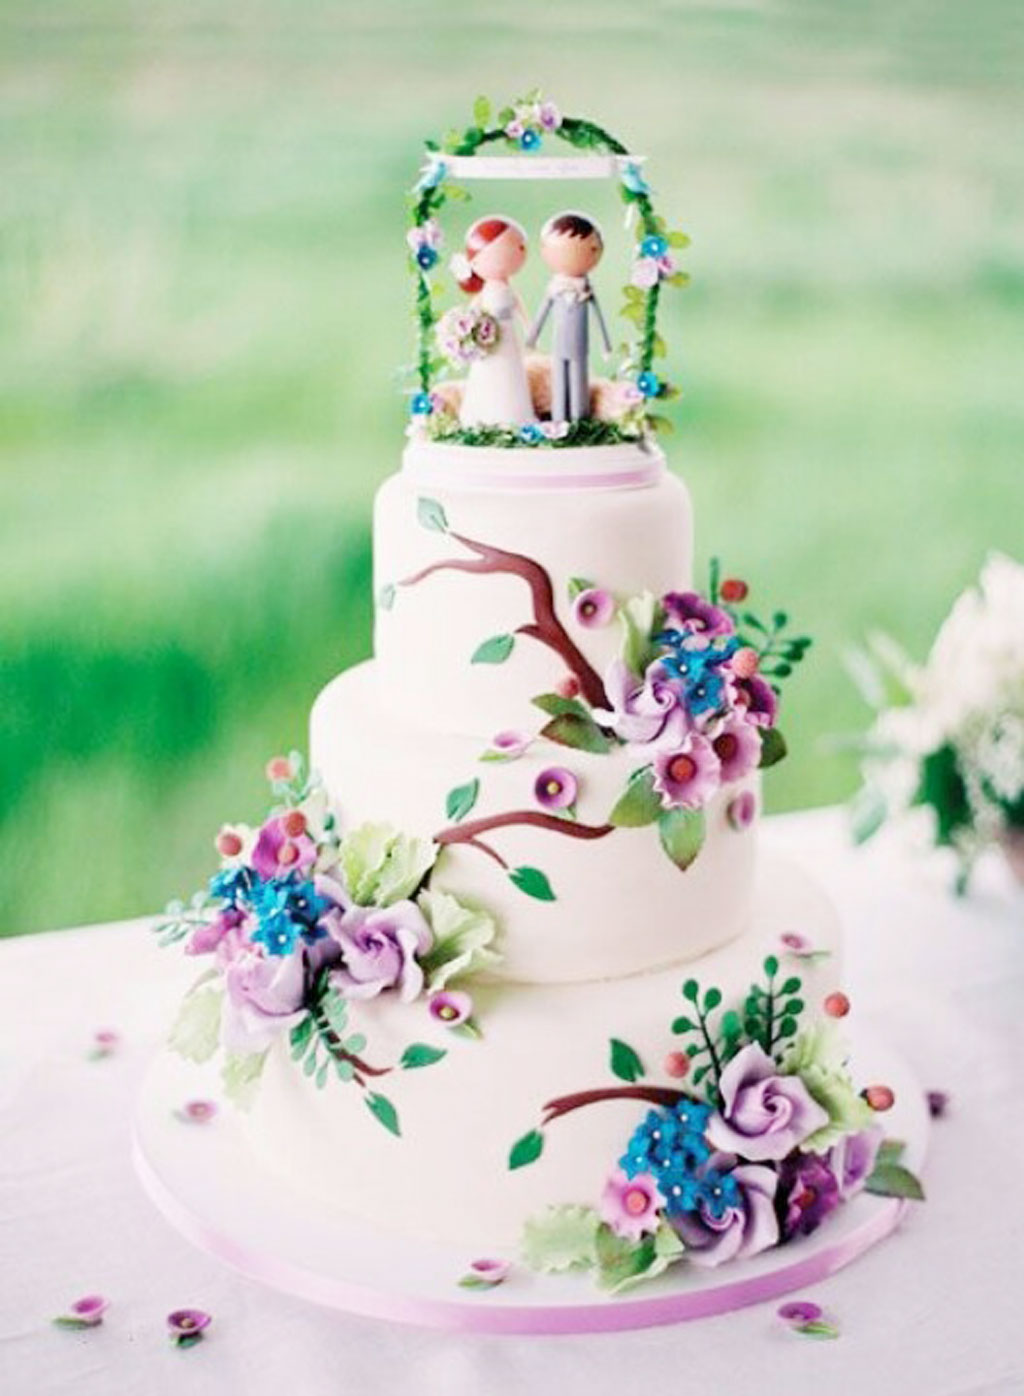 Cute Whimsical Wedding Cake Wedding Cake - Cake Ideas by ...